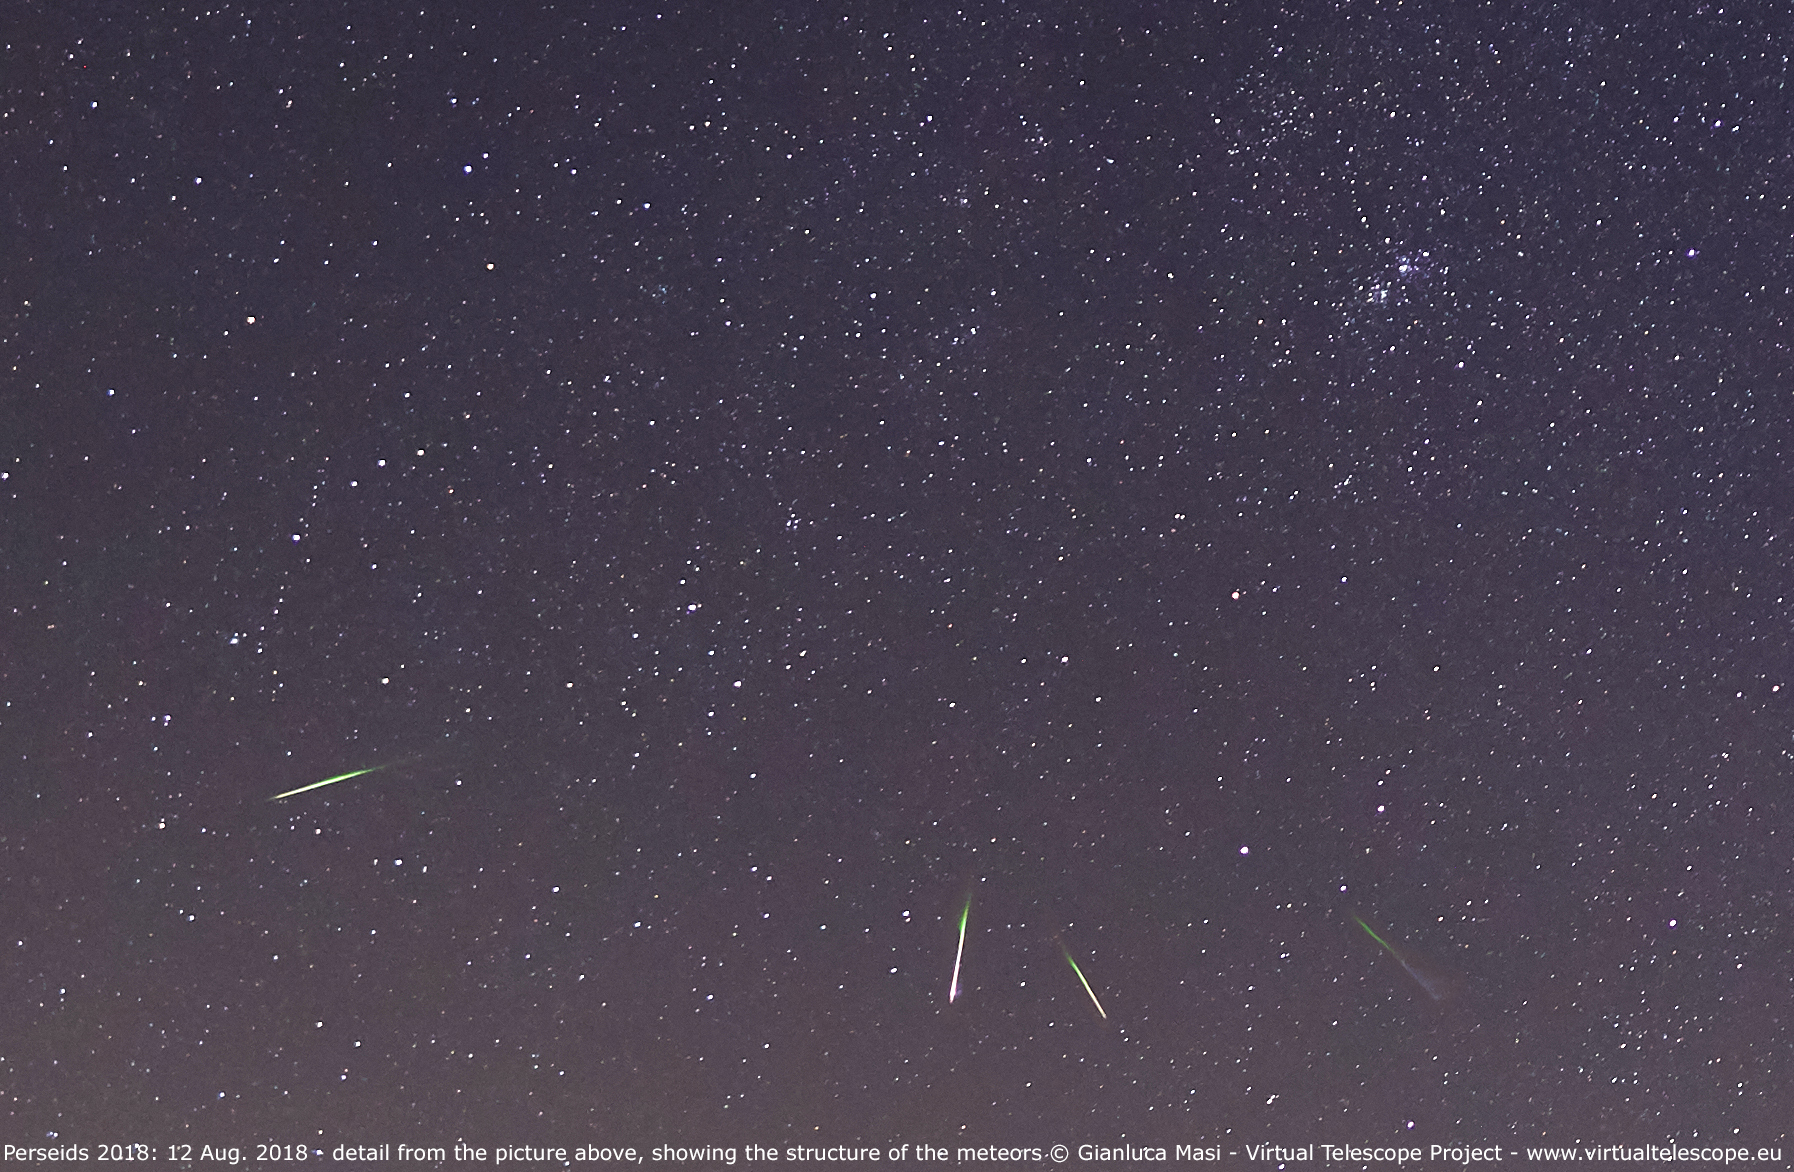 A close-up, showing the structure of the meteor streaks